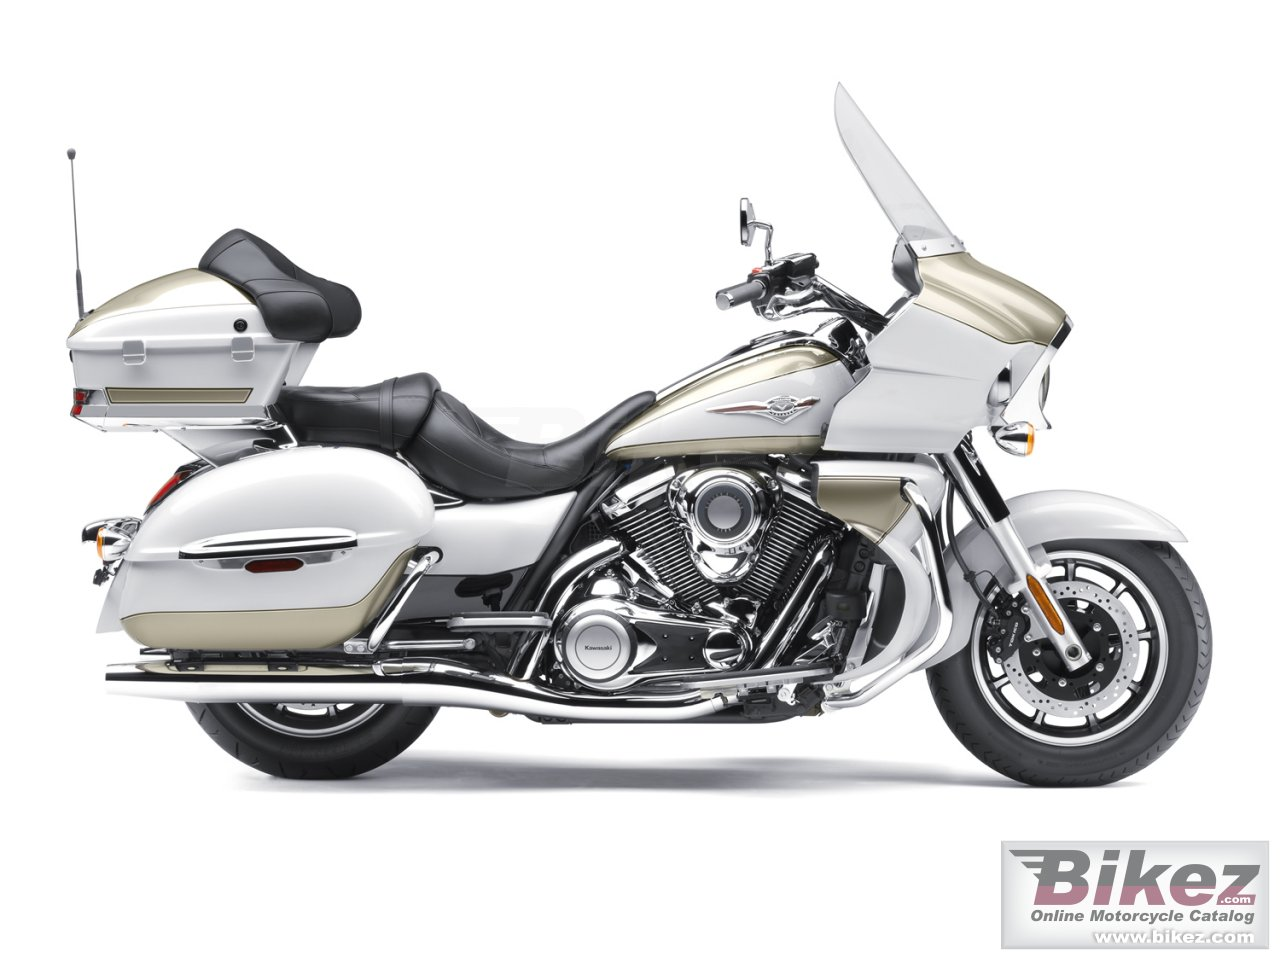 Big Kawasaki vulcan 1700 voyager picture and wallpaper from Bikez.com